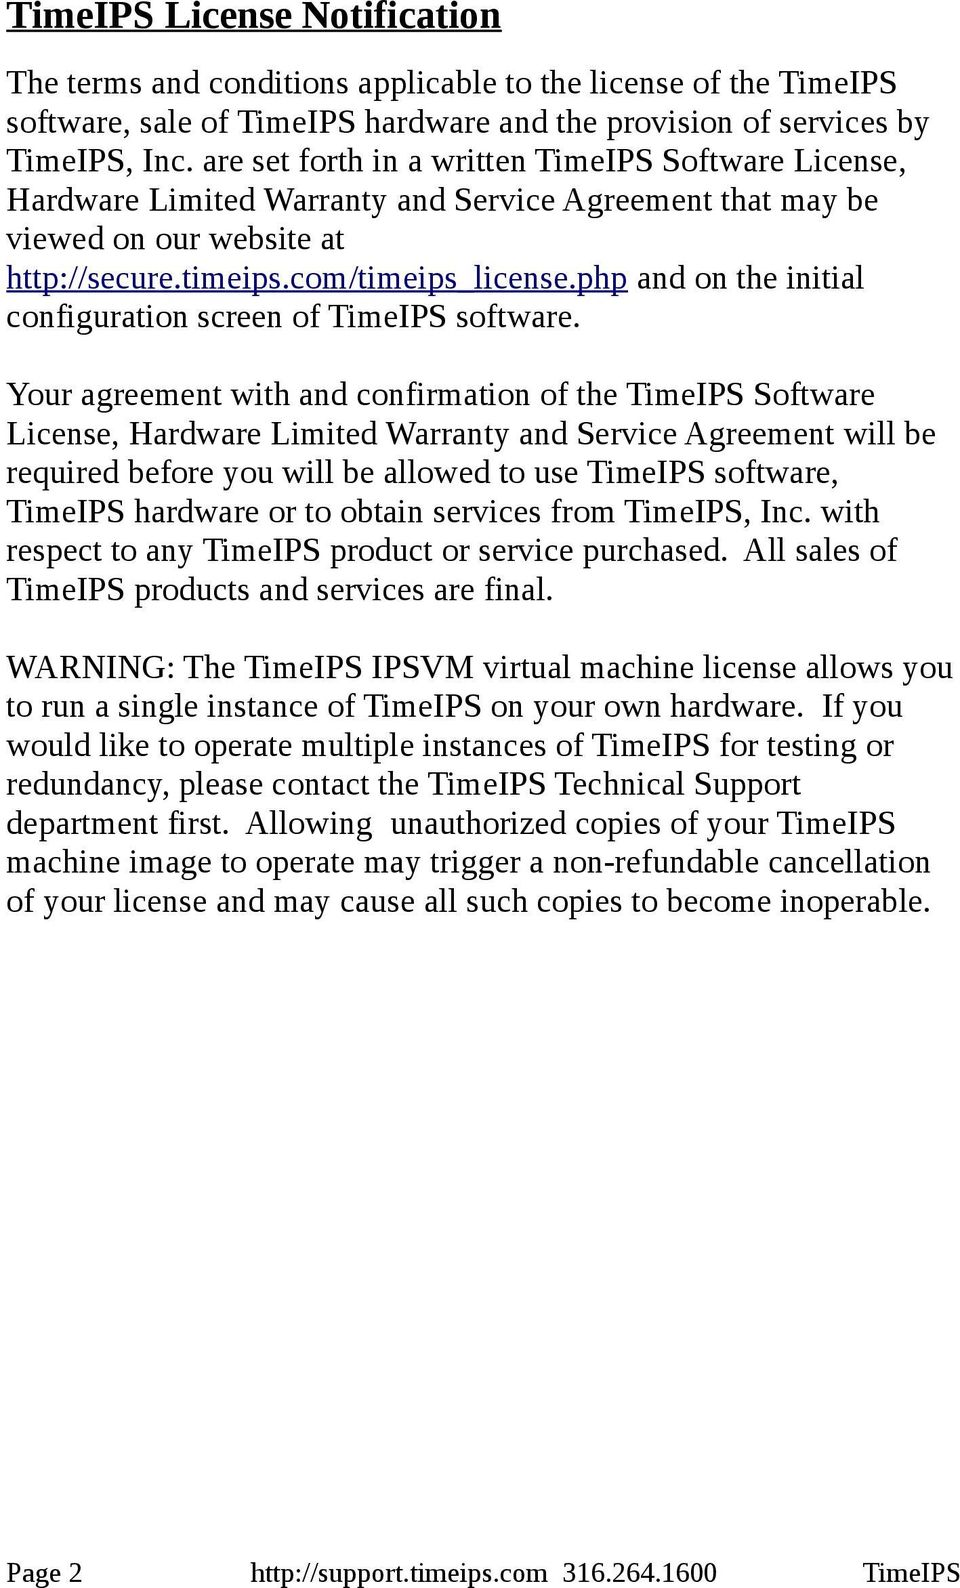 php and on the initial configuration screen of TimeIPS software.